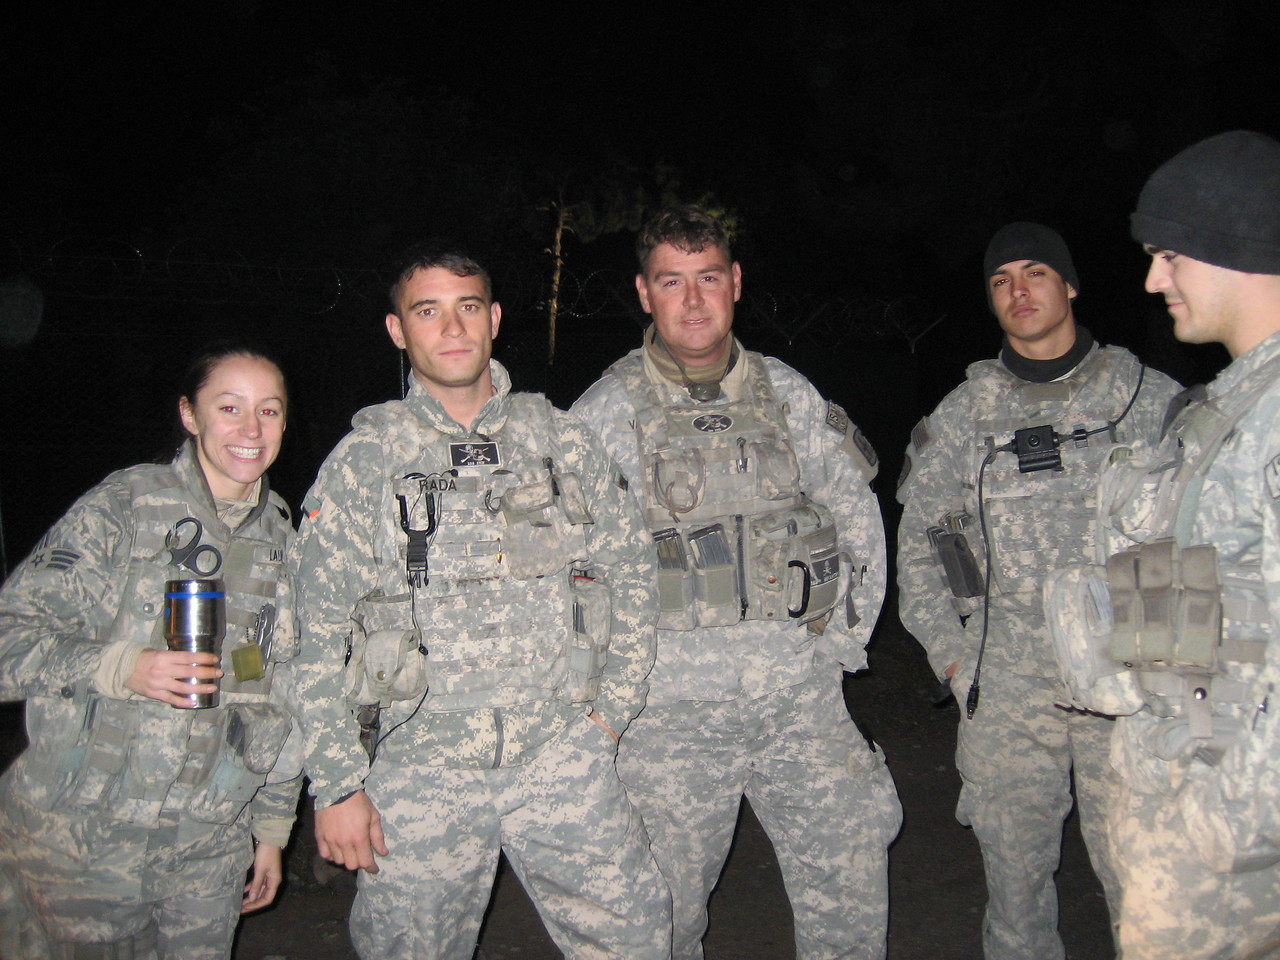 Provicial Reconstruction Team, Nangarhar, Jalalabad, Afghanistan, Video, PRT, JBAD, FOB, FOB FinleyShields, Finley Shields, FOB, PRT 7, Civil Affairs, 158th, sky soldier, lucky 7, Military, Air Force, Army 158th AZ Army National Guard